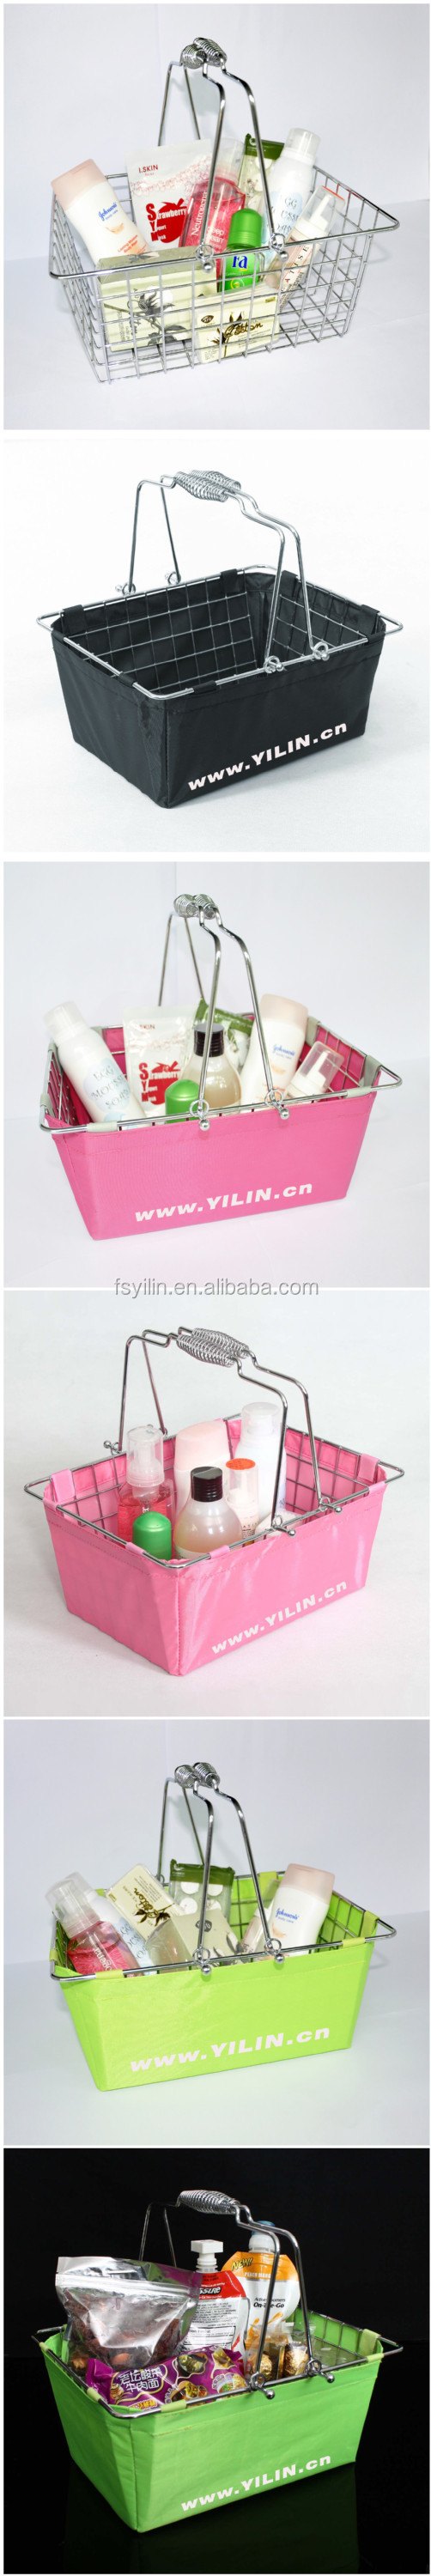 Small cosmetic shopping baskets